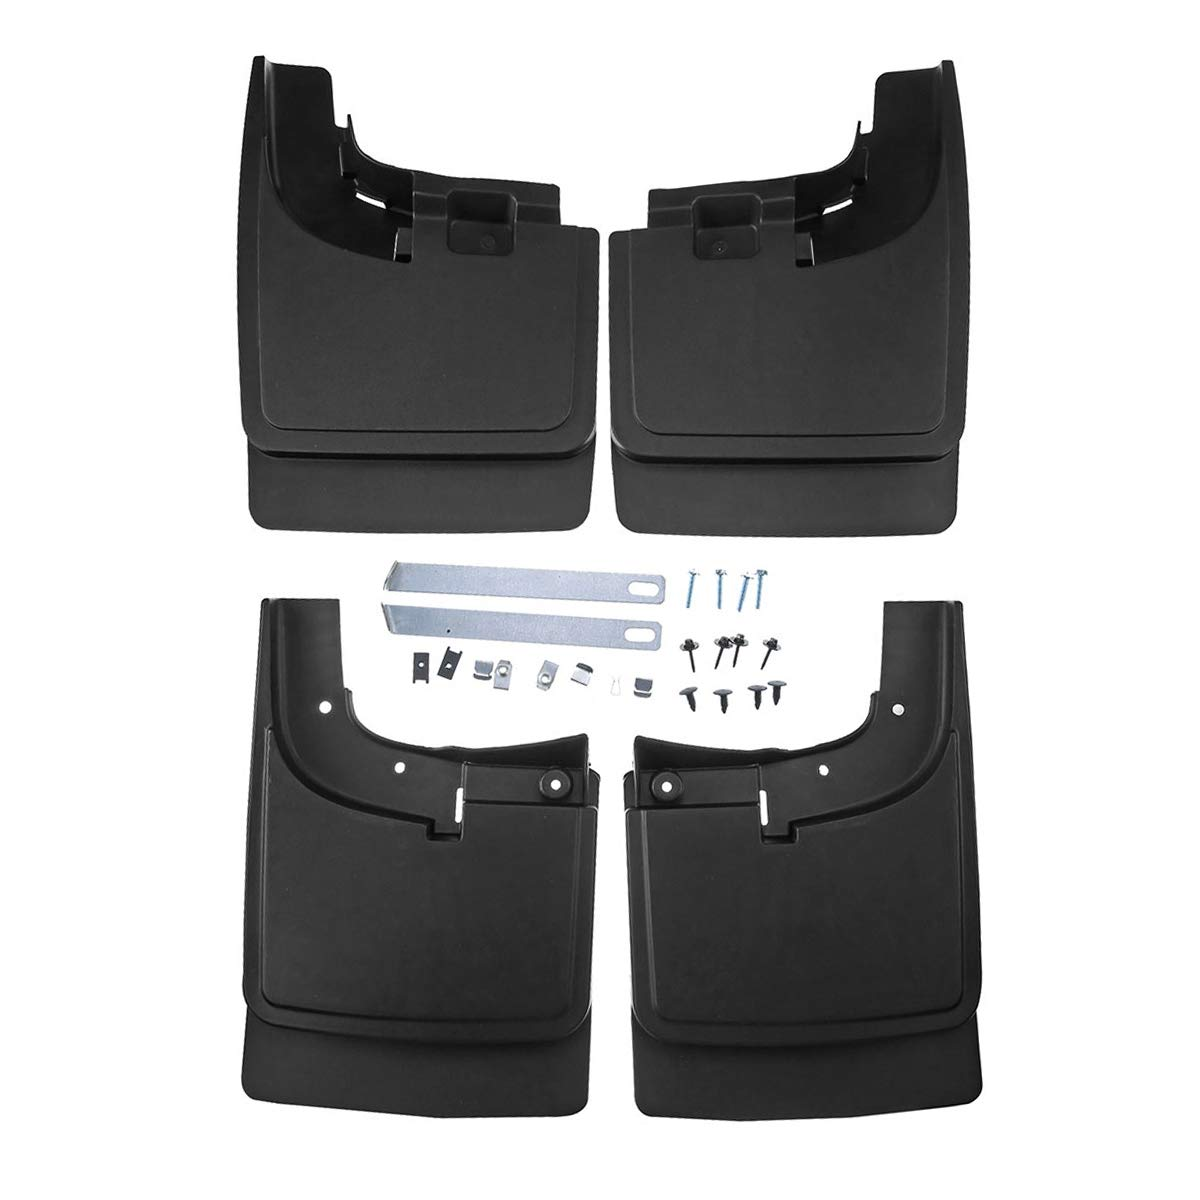 A-Premium Splash Guard Mud Flaps for Ford F-250 F-350 F-450 F-550 Super Duty 2017-2018 without Factory Fender Flares